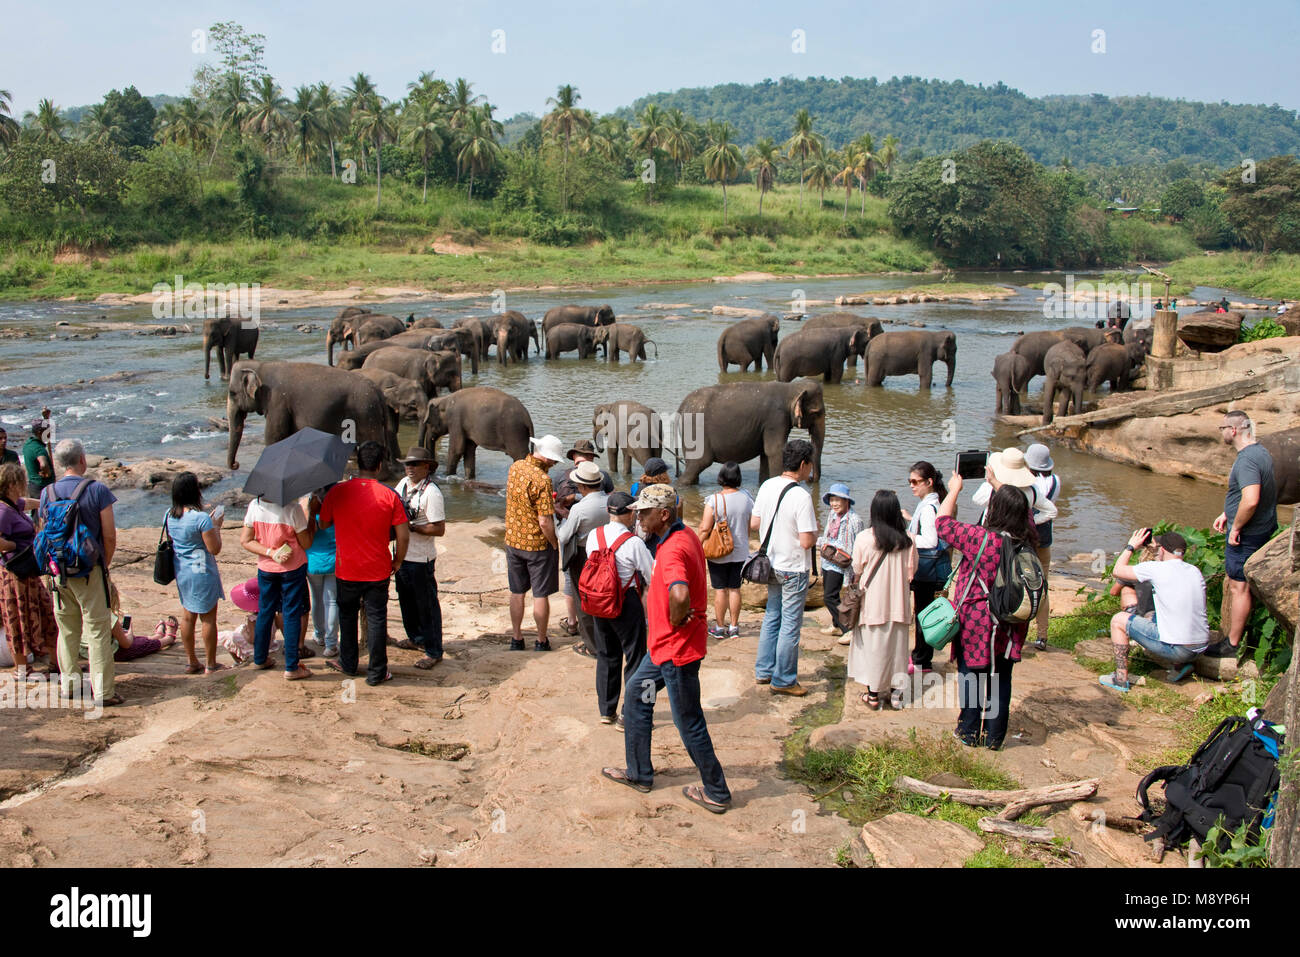 Sri Lankan elephants from the Pinnawala Elephant Orphanage bathing in the river with tourists watching and photographing - Stock Image